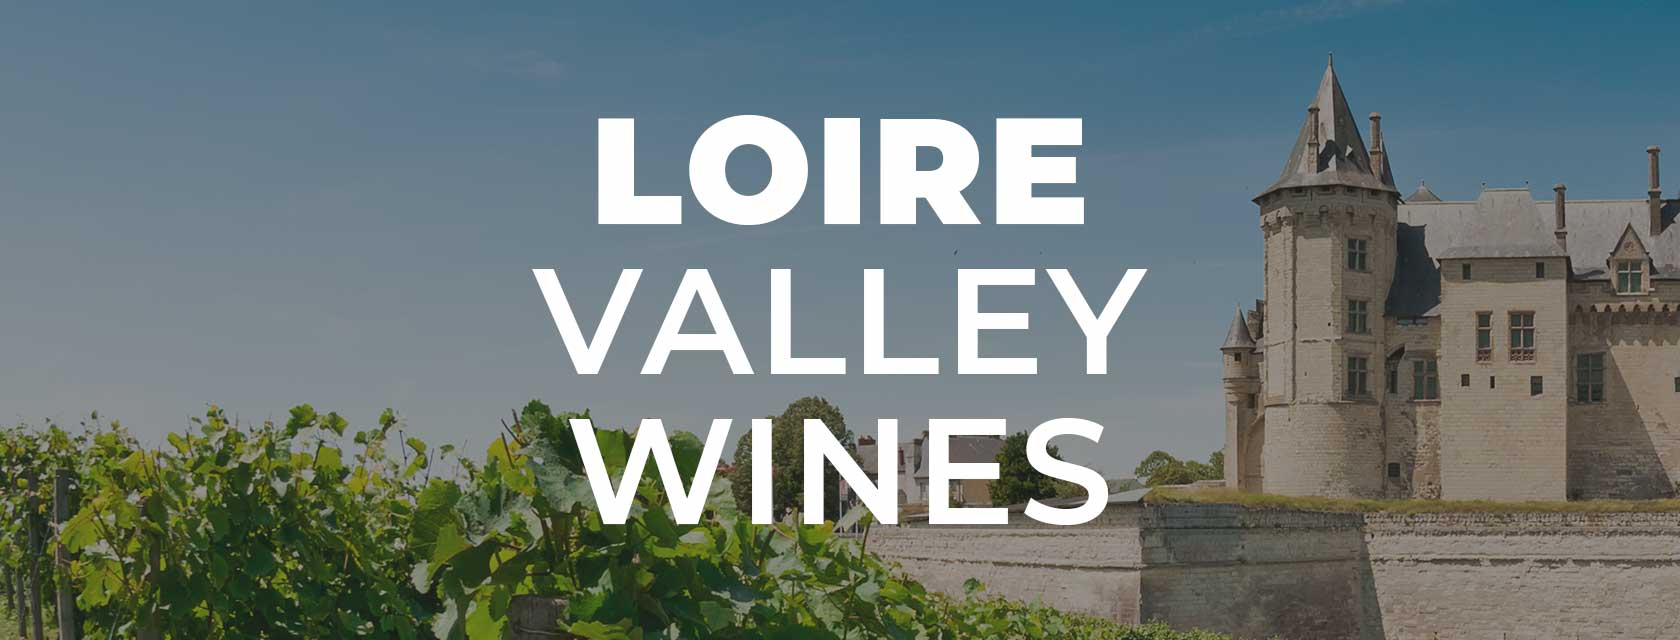 Loire Valley Promo Banner Image